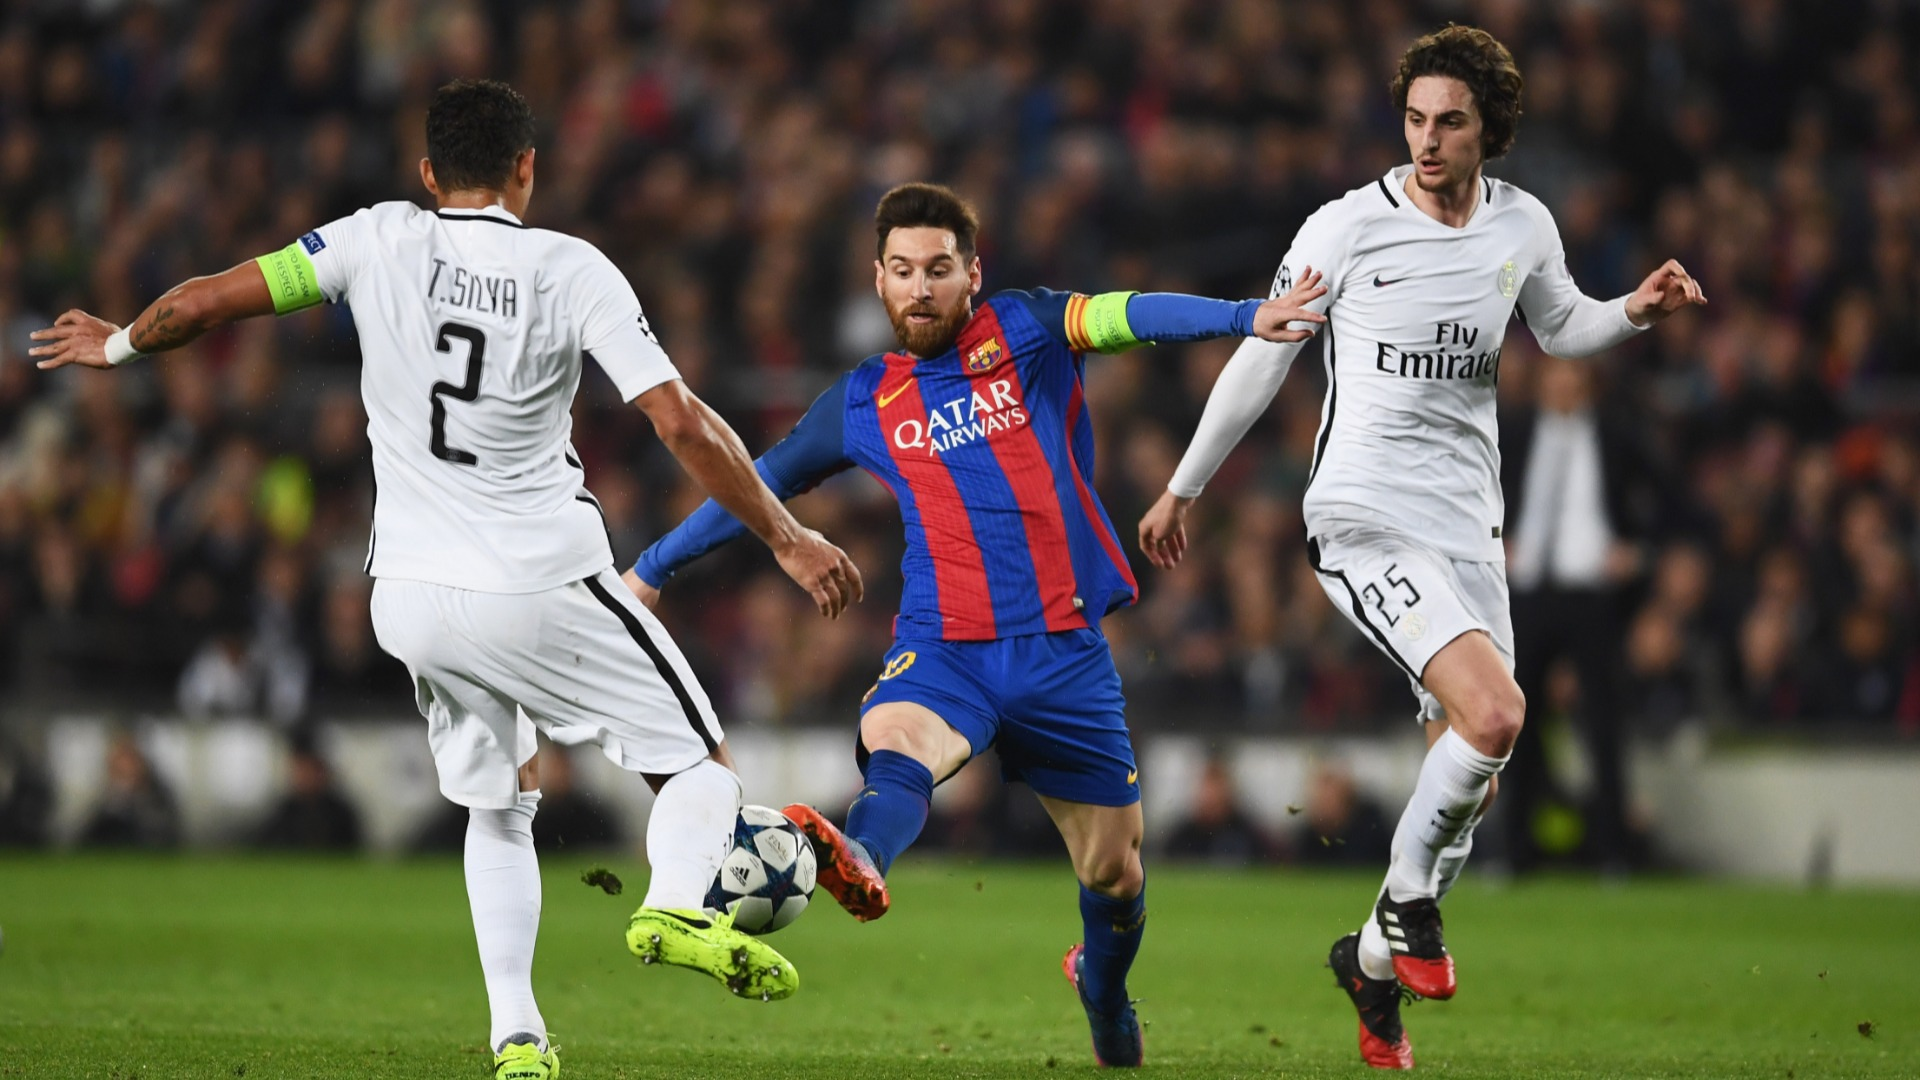 'Messi played the referee against PSG' - Silva responds to Argentine star's Copa America comments